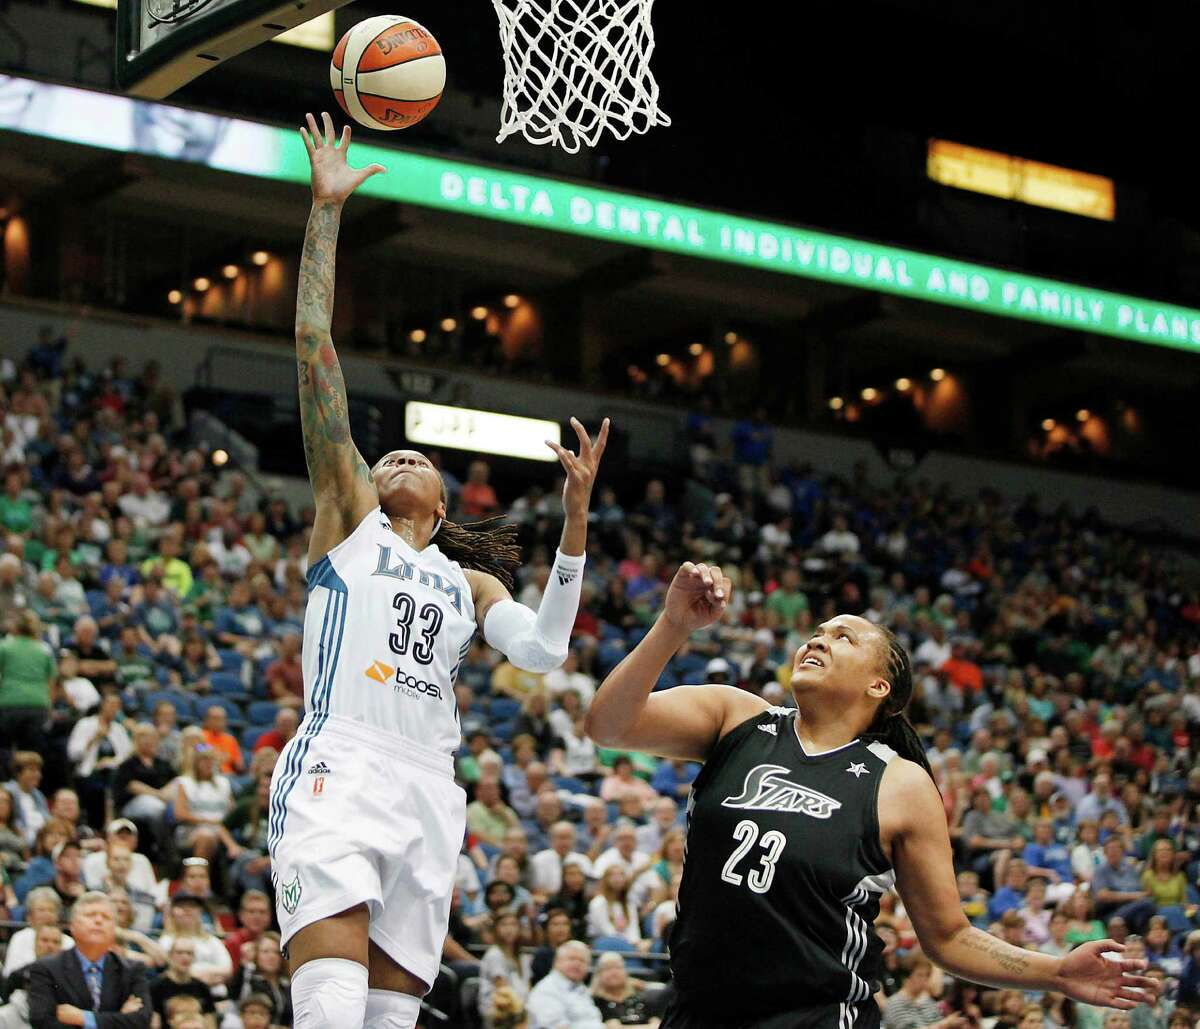 Minnesota Lynx guard Seimone Augustus (33) goes up to the basket past San Antonio Silver Stars forward Danielle Adams (23) during the first half of a WNBA basketball game, Friday, Aug. 2, 2013, in Minneapolis. (AP Photo/Stacy Bengs)